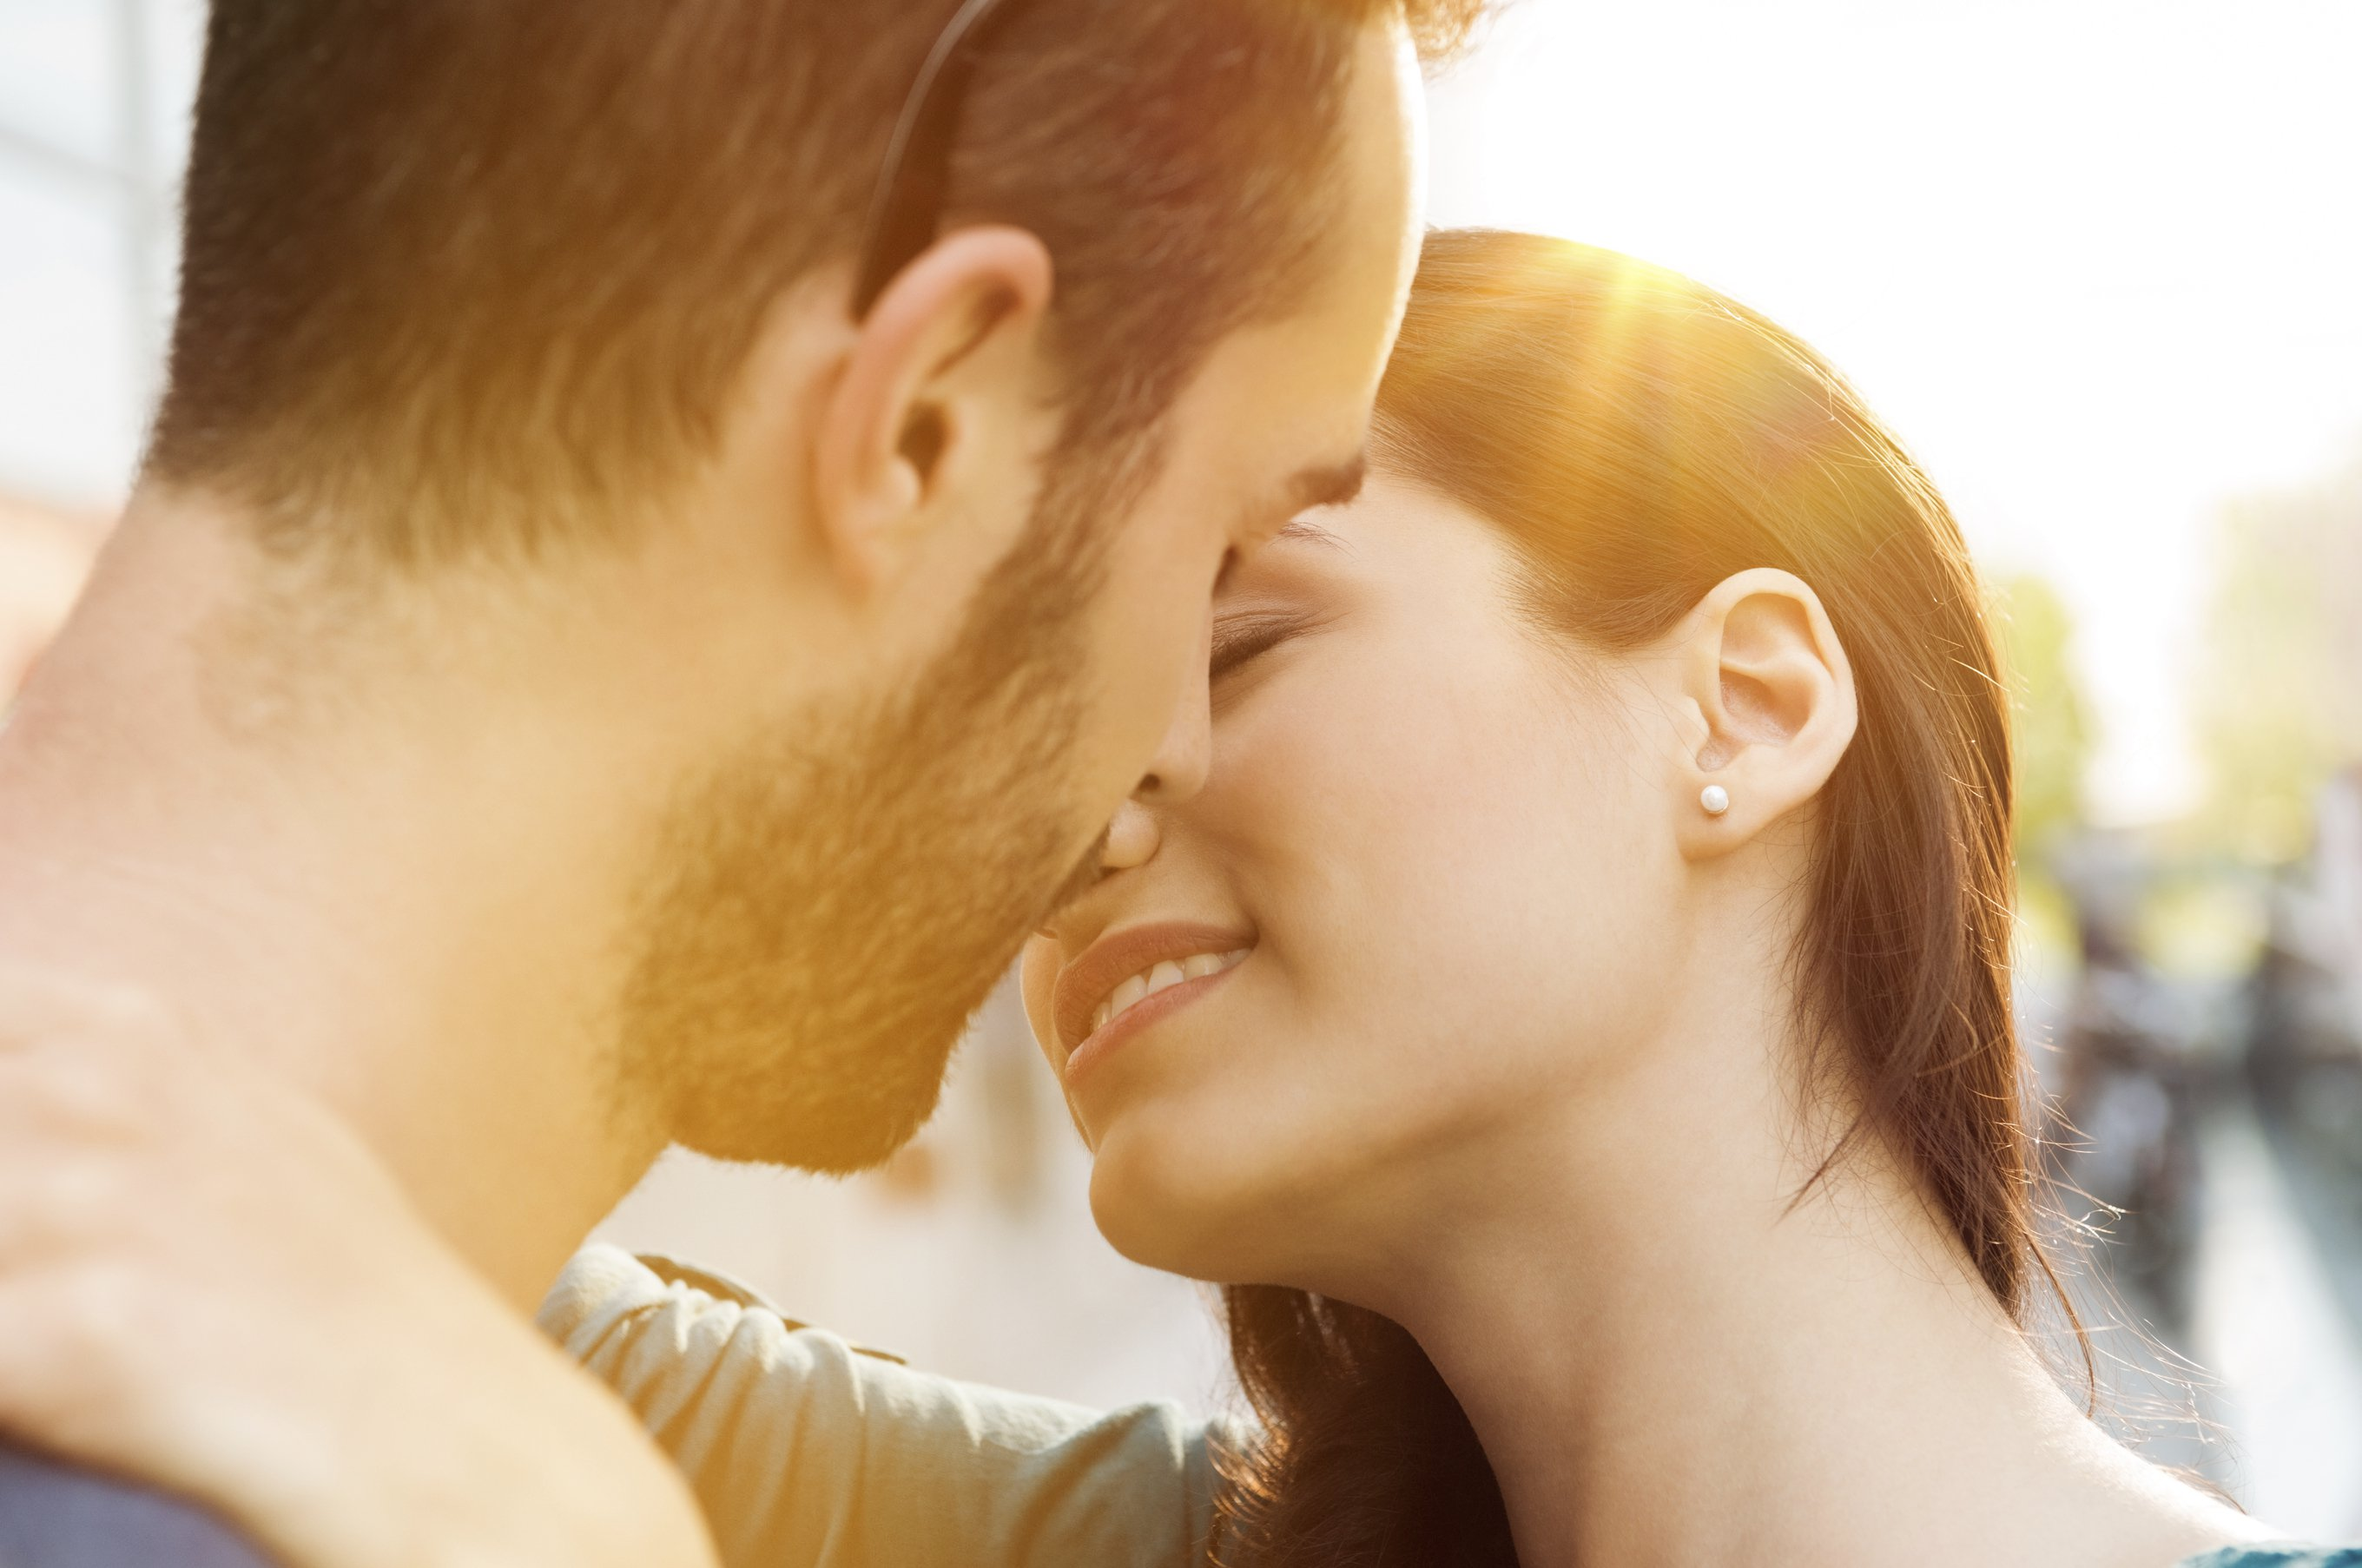 8 Practical First Kiss Tips